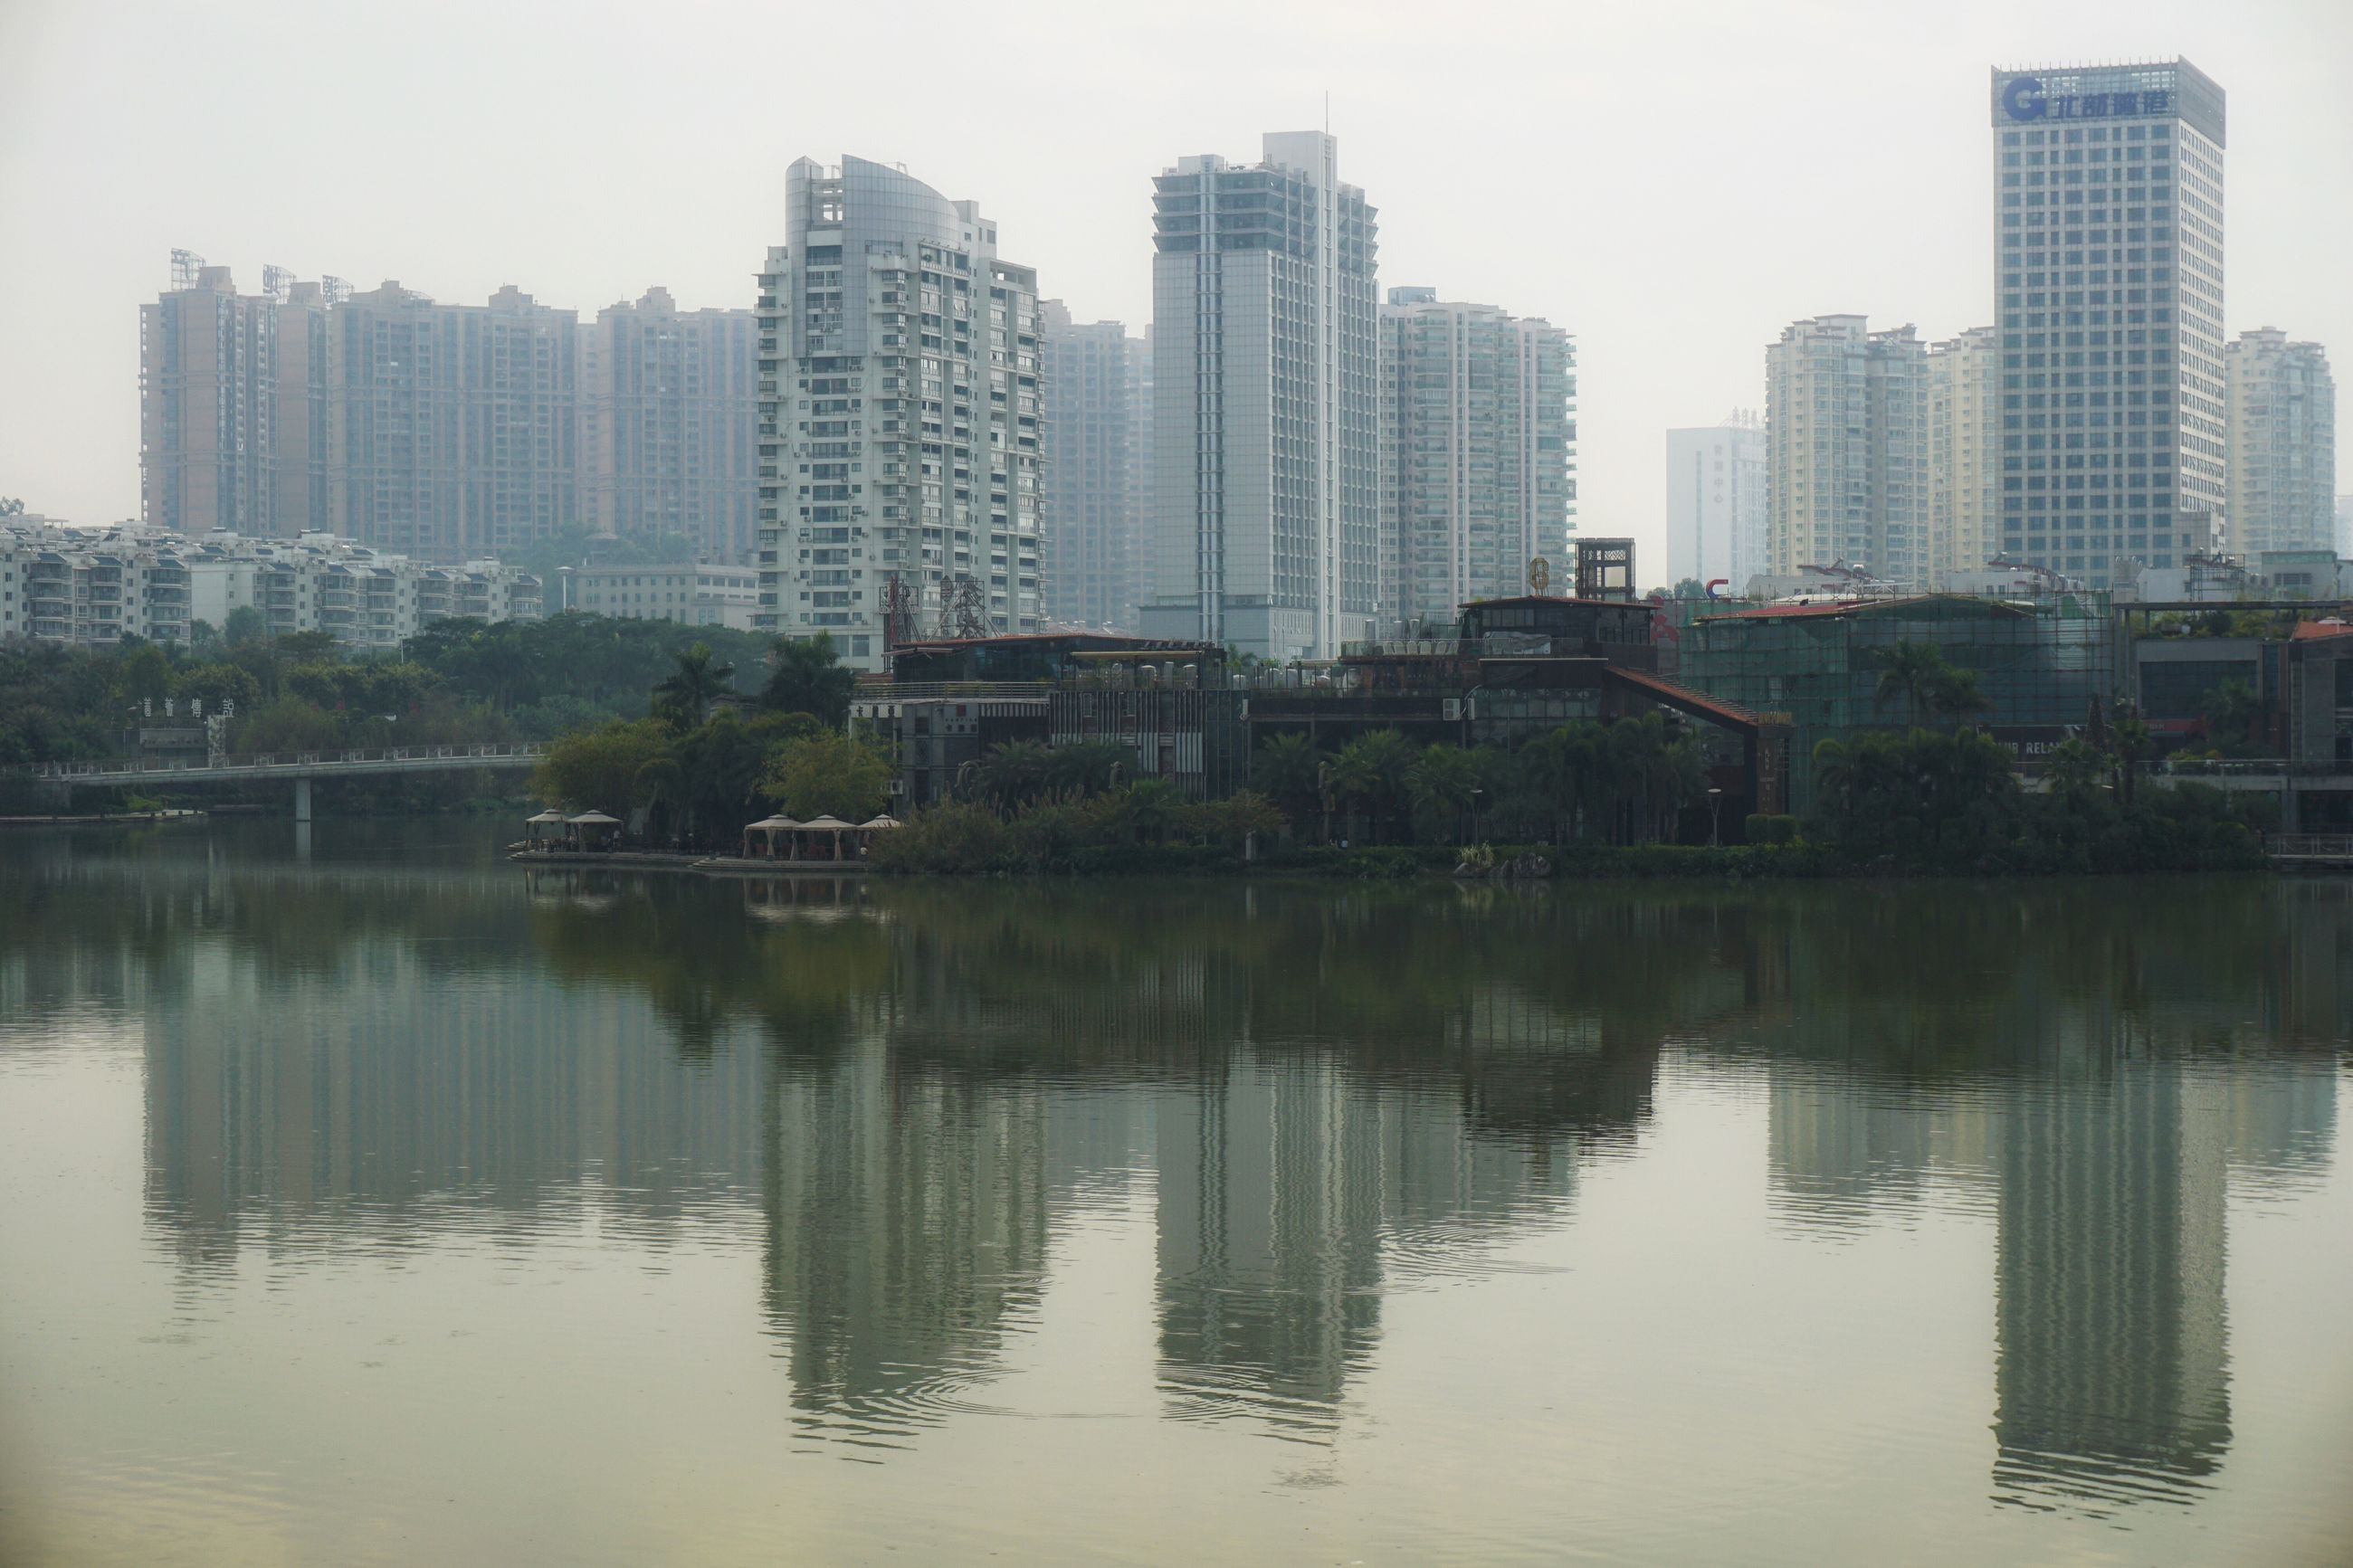 building exterior, architecture, built structure, city, water, skyscraper, reflection, waterfront, tree, tall, tall - high, building story, sky, development, office building, modern, outdoors, city life, urban skyline, apartment, tranquility, no people, skyline